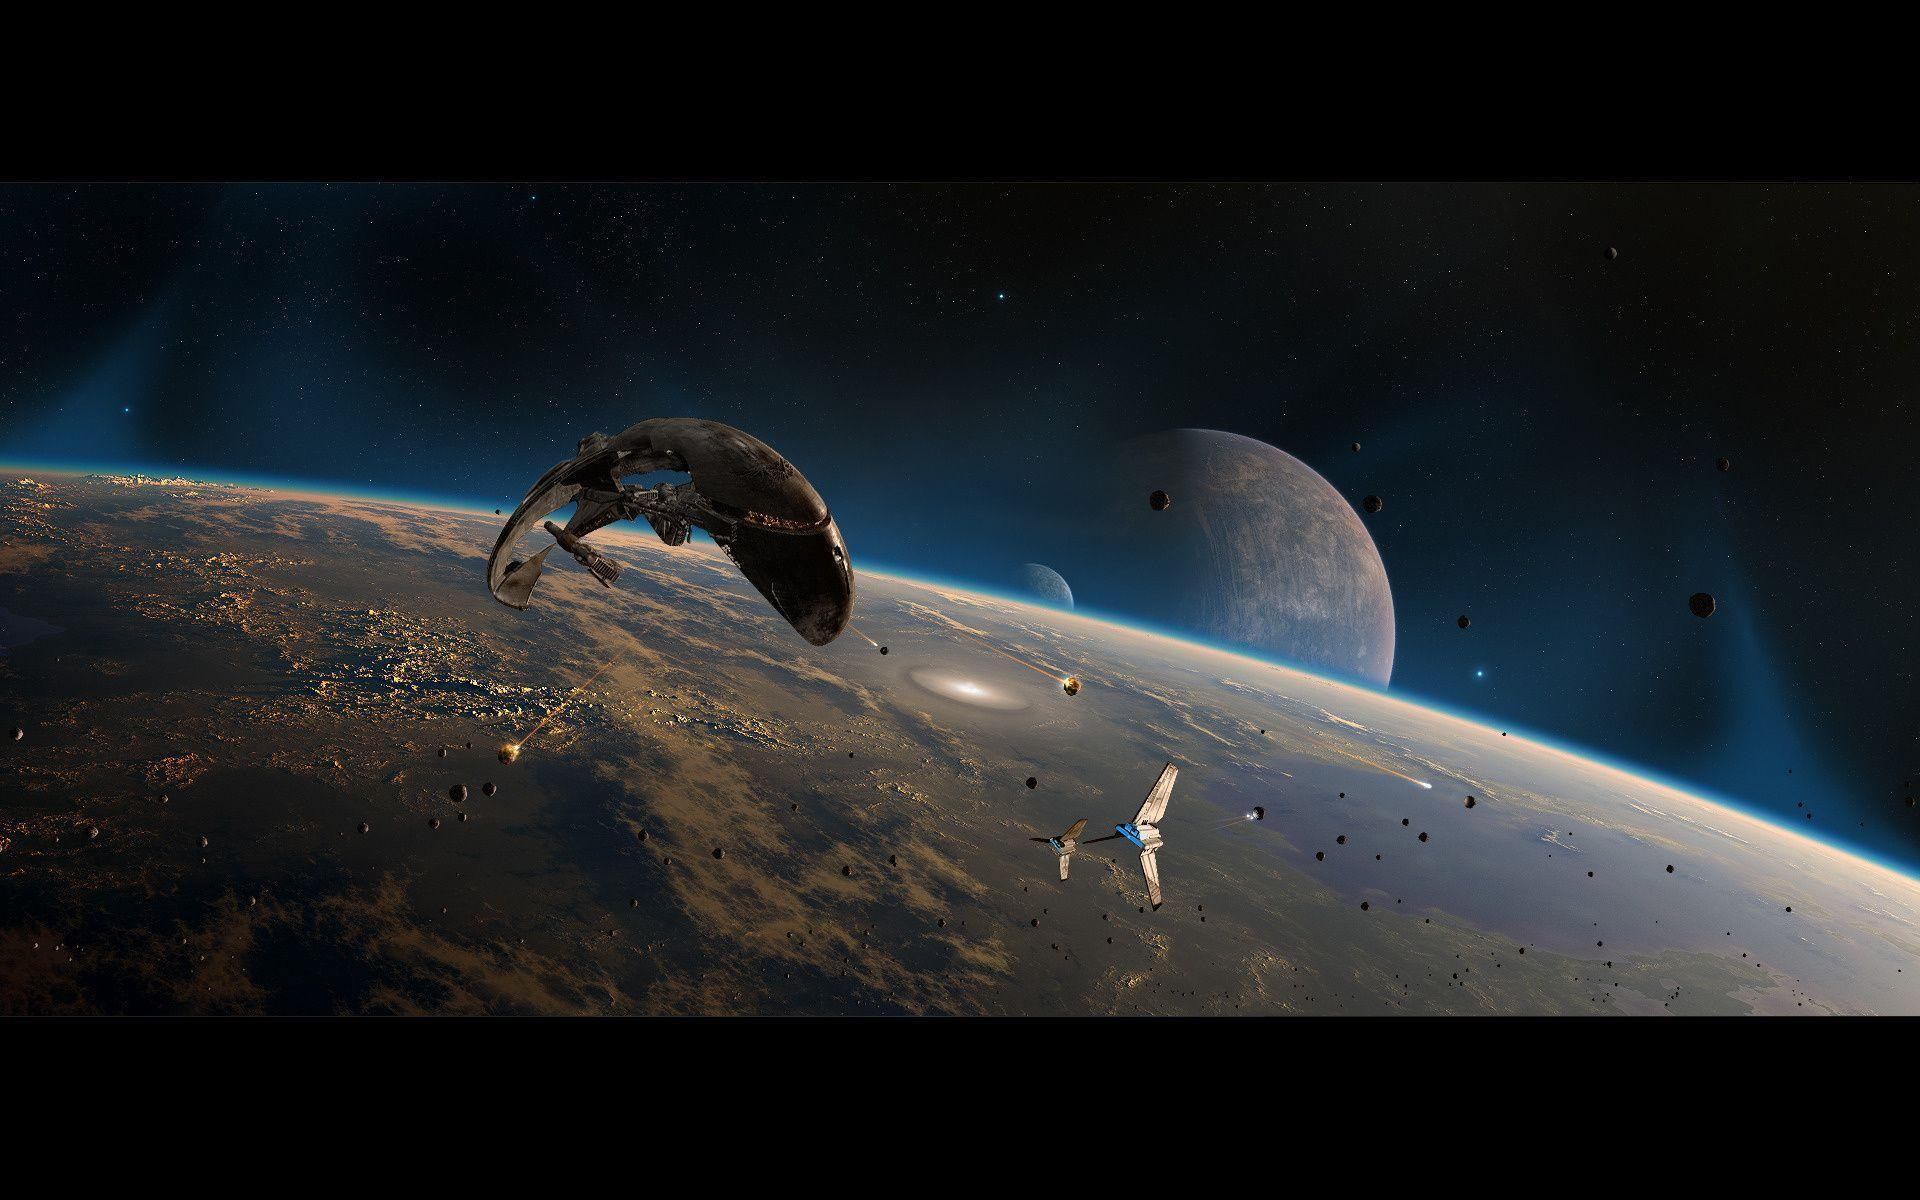 Spaceship Wallpapers 1920X1080 Hd Image 3 HD Wallpapers